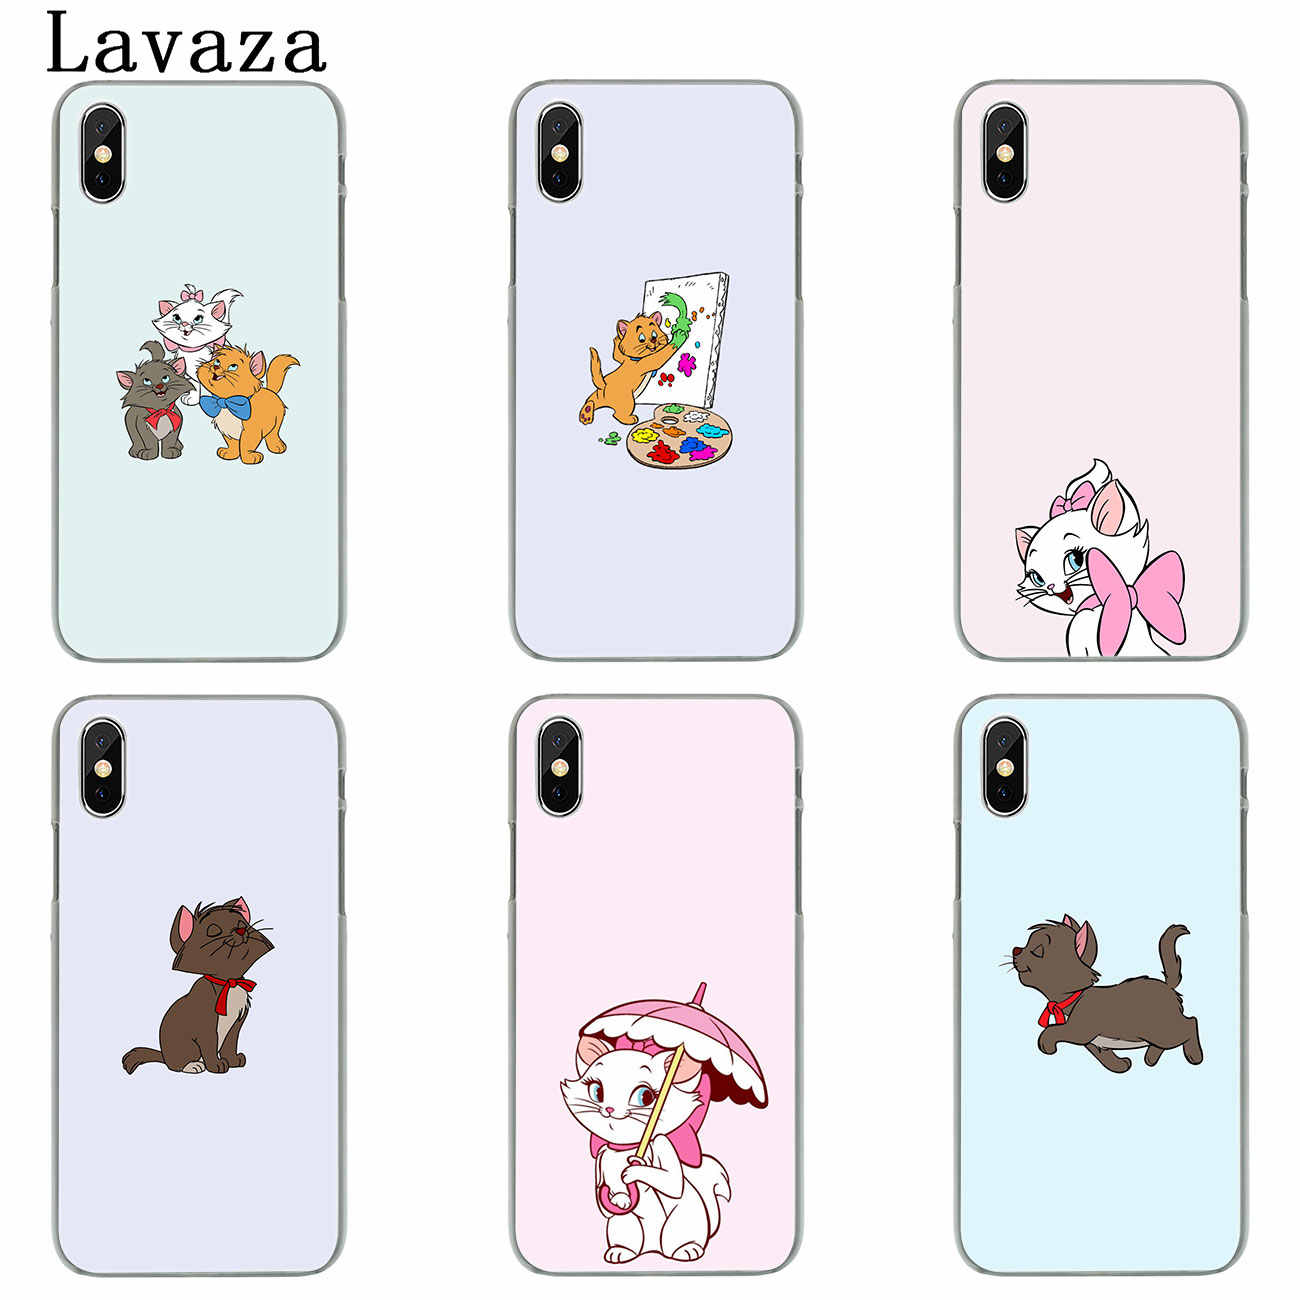 buy online 8ec2a 451fd Lavaza The cartoon AristoCats Marie Cat Hard Cover Case for Apple iPhone X  XS Max XR 6 6S 7 8 Plus 5 5S SE 5C 4S 10 Phone Cases